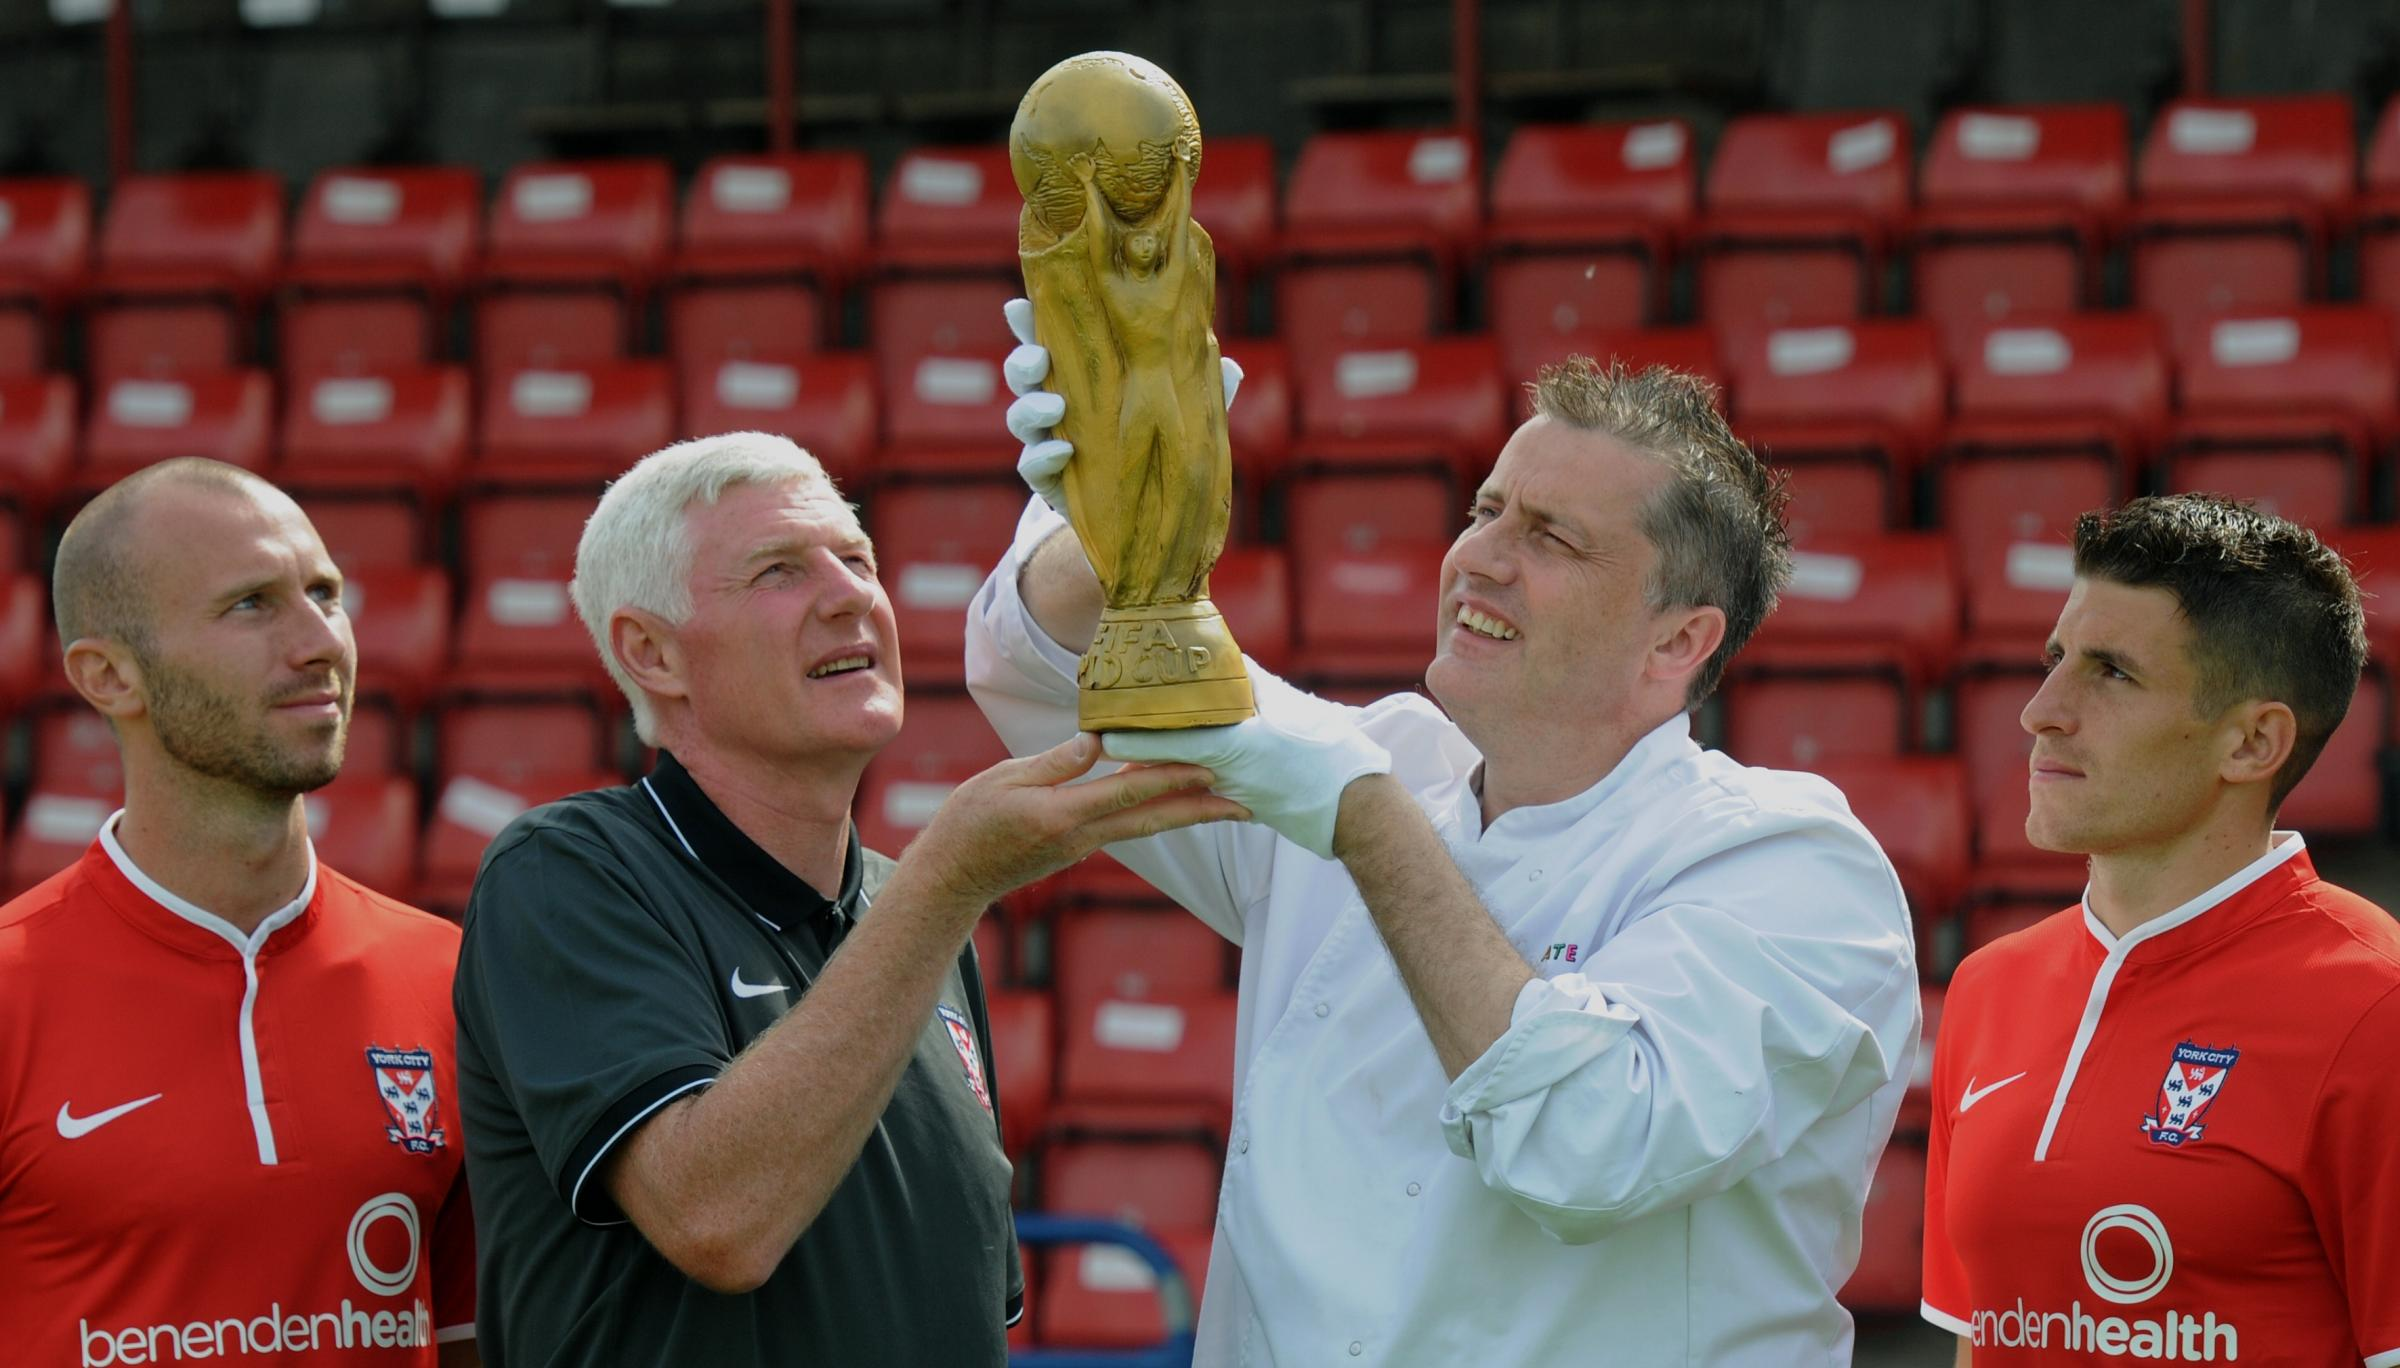 York City manager Nigel Worthington gets a closer look at the chocolate World Cup, held by York Chocolate Story's head chocolatier Andrew Thwaite, wa